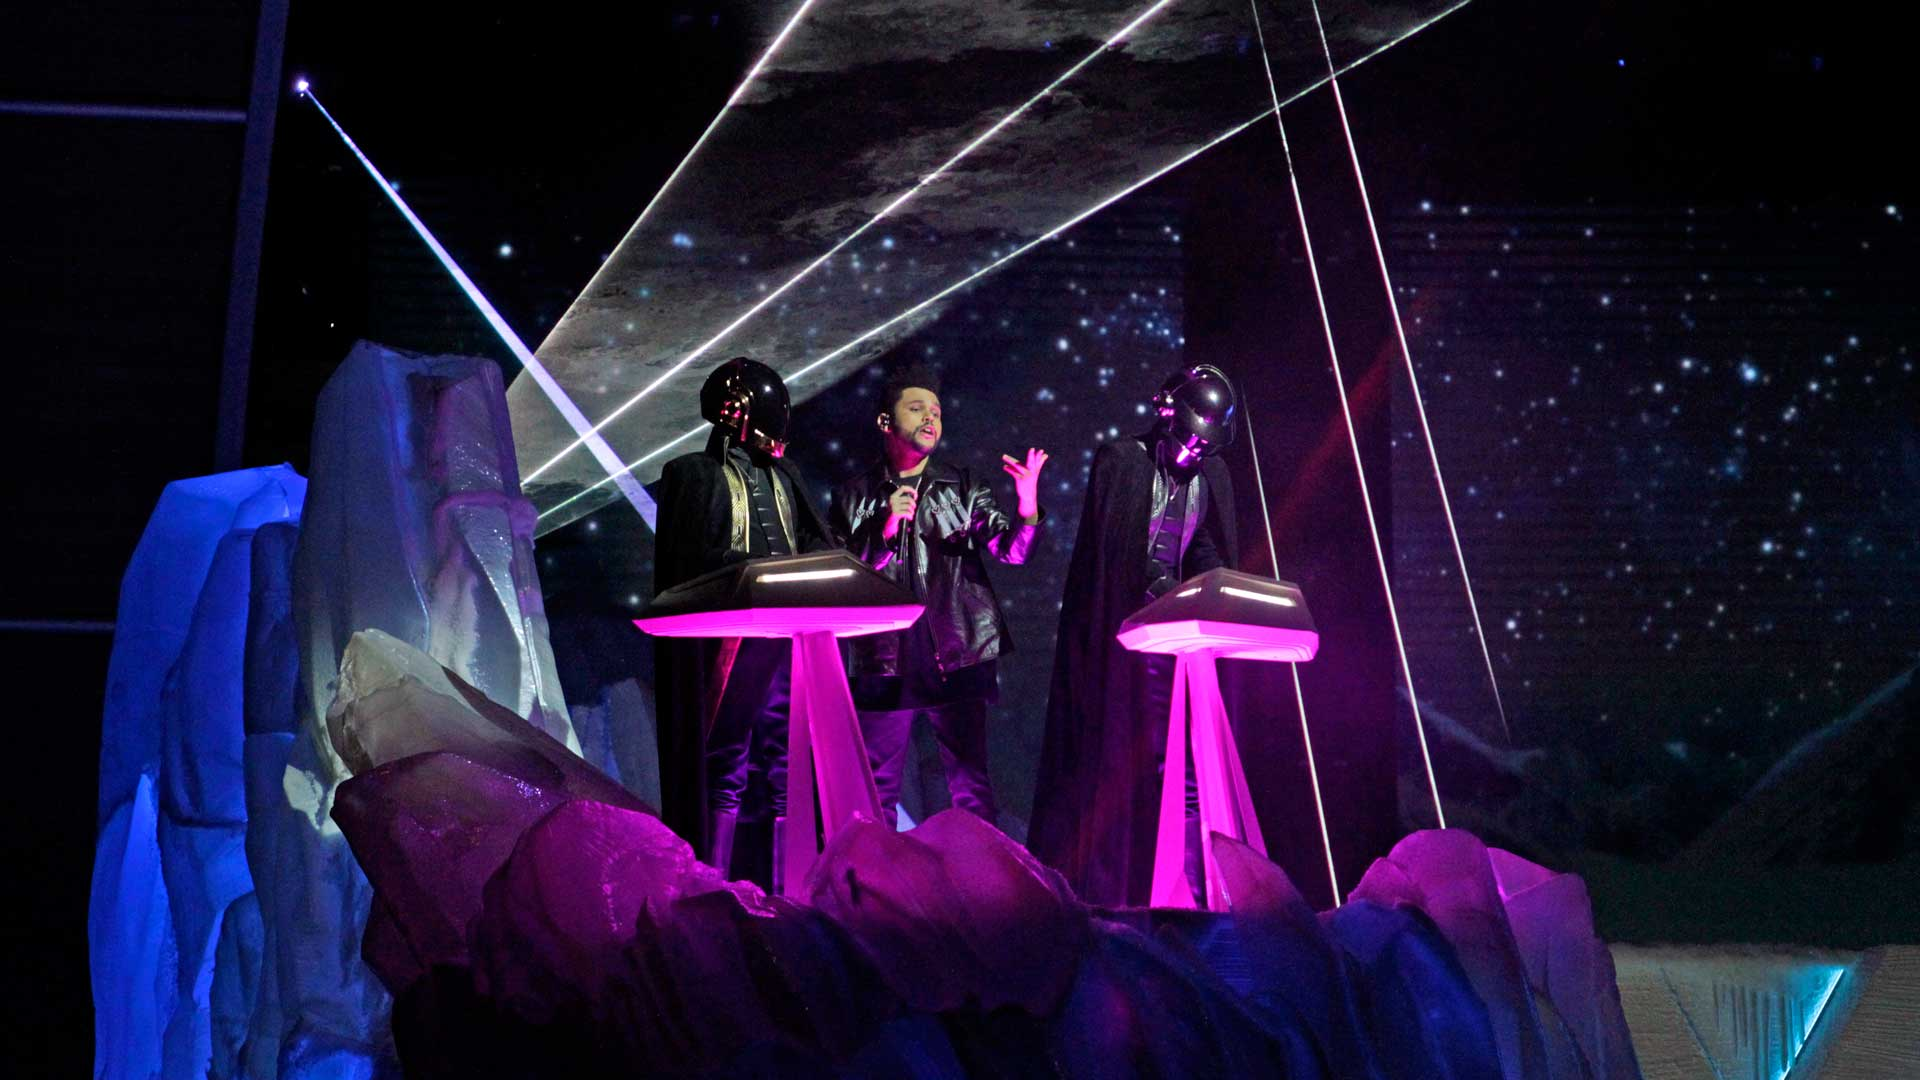 The Weeknd featuring Daft Punk perform